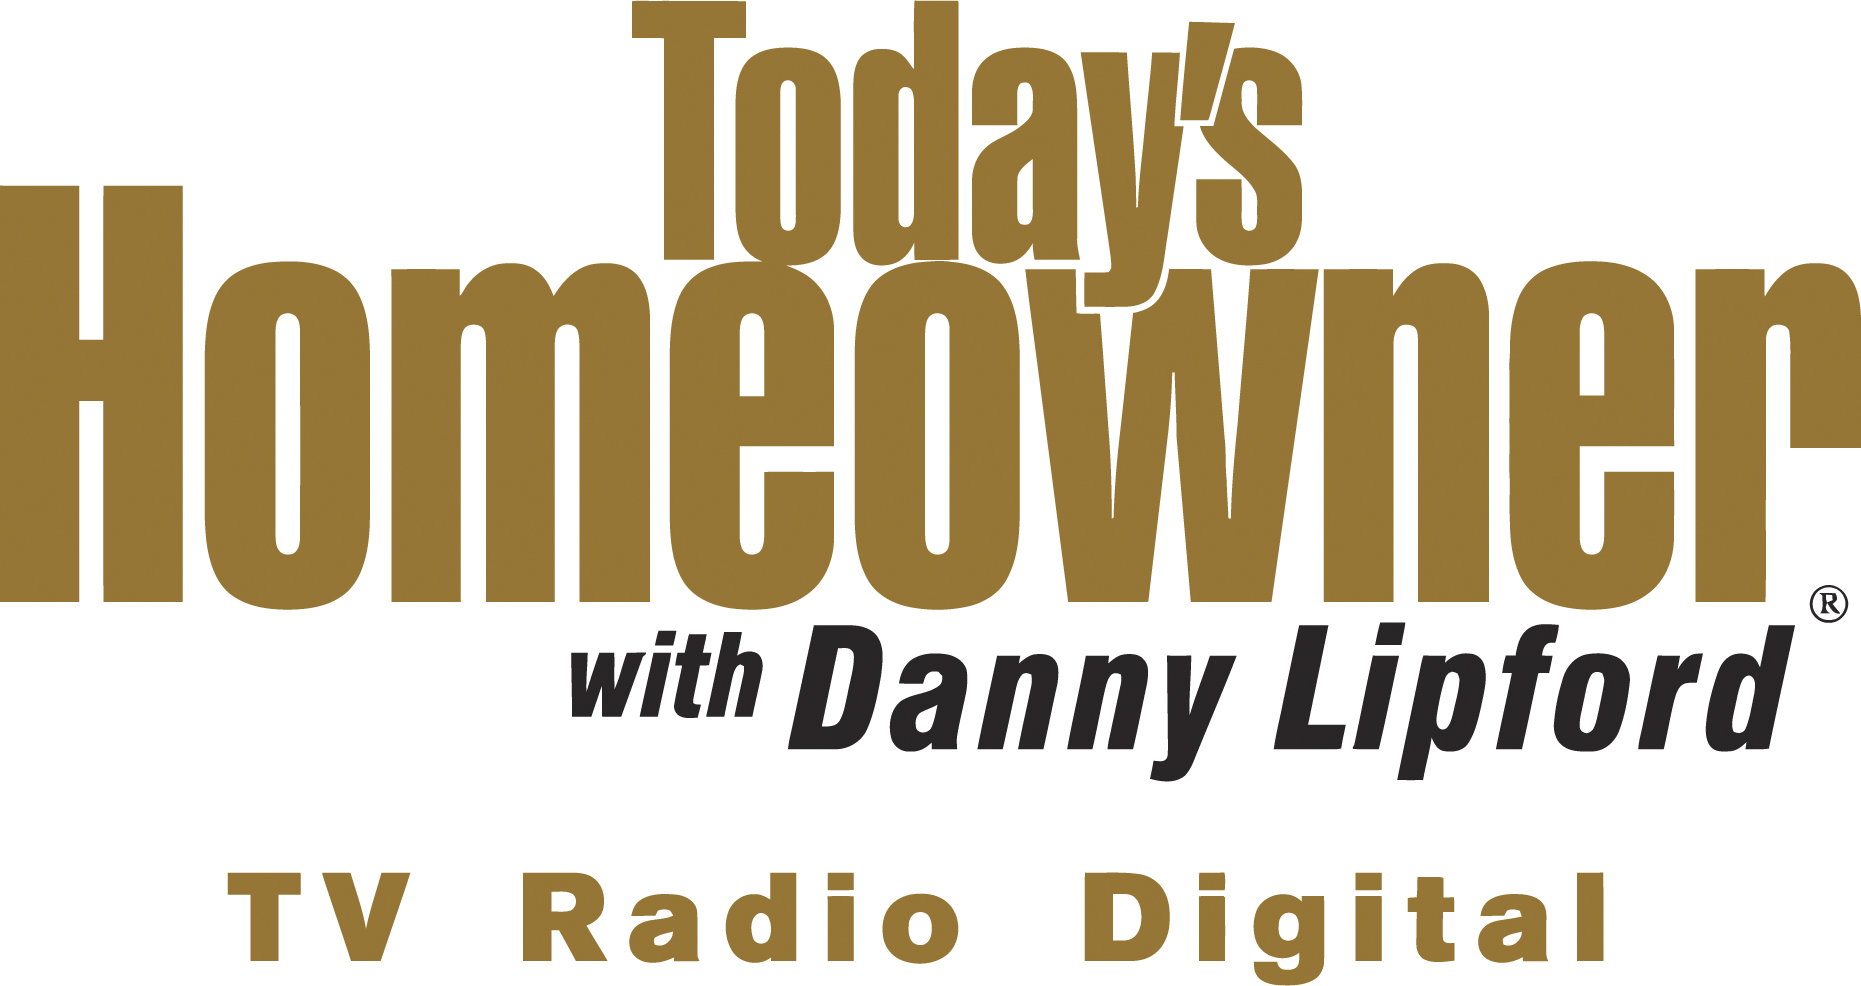 Todays homeowner Logo